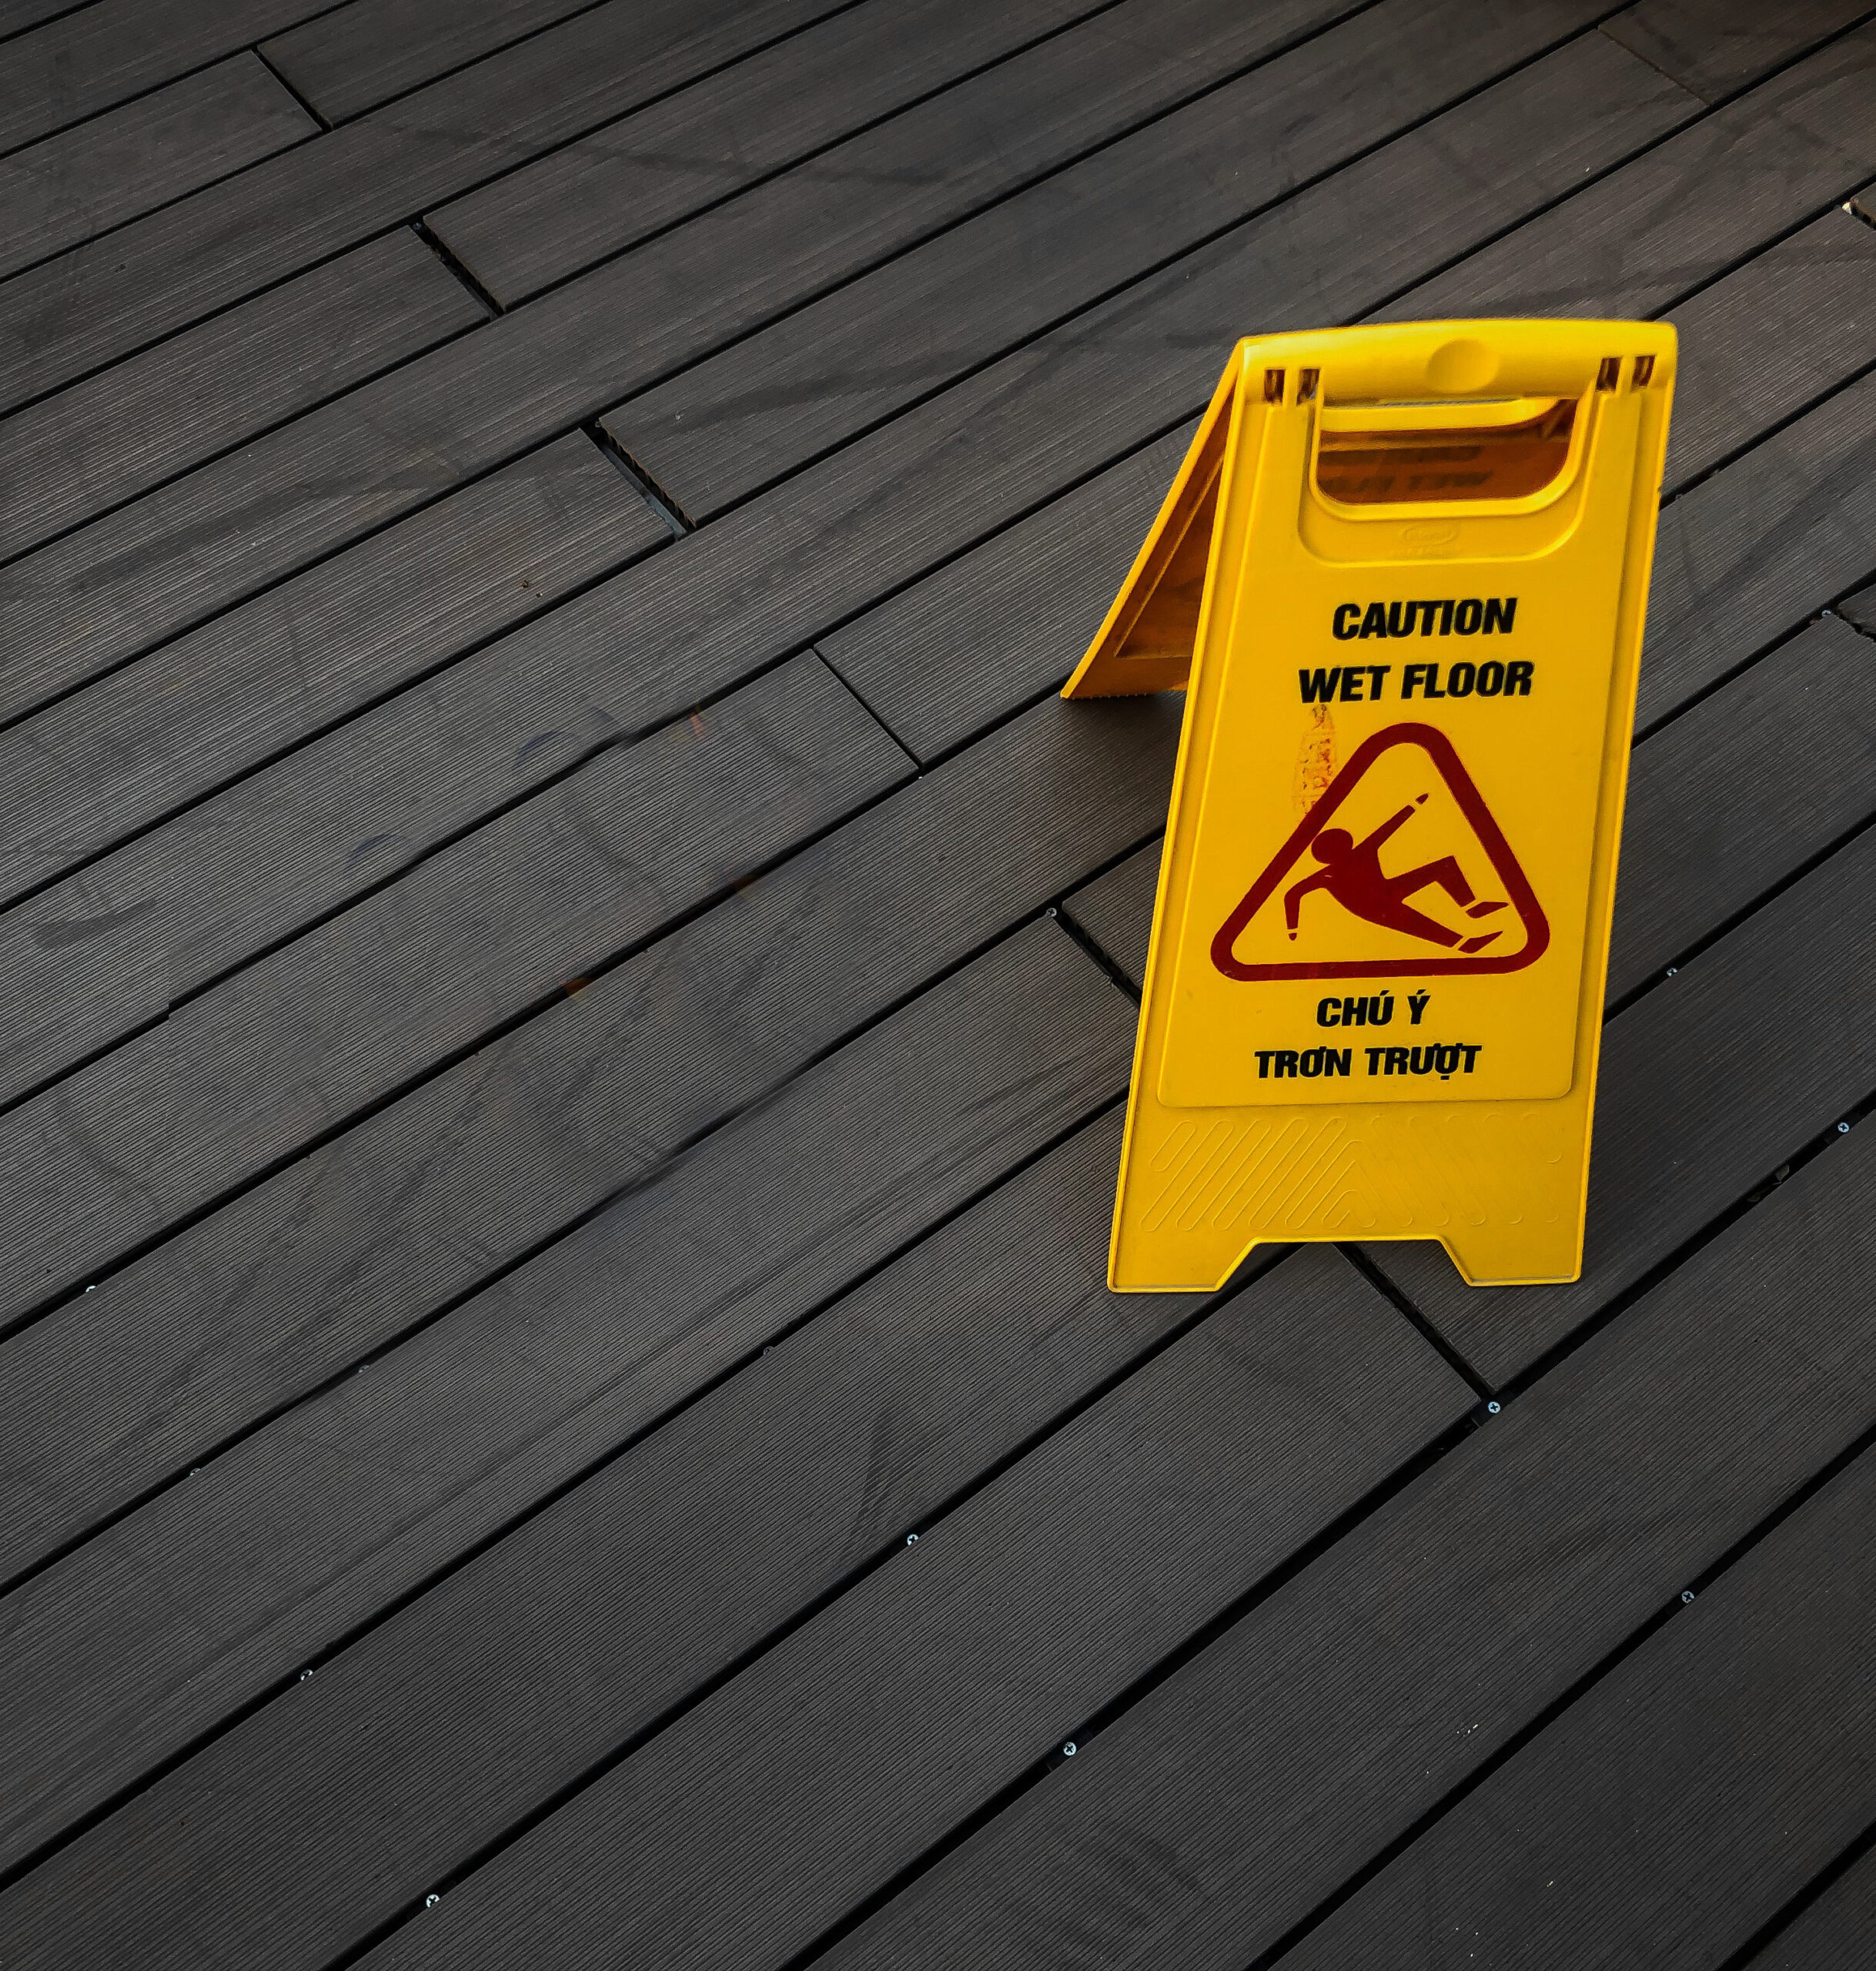 Slips, Trips and Fall Prevention – English